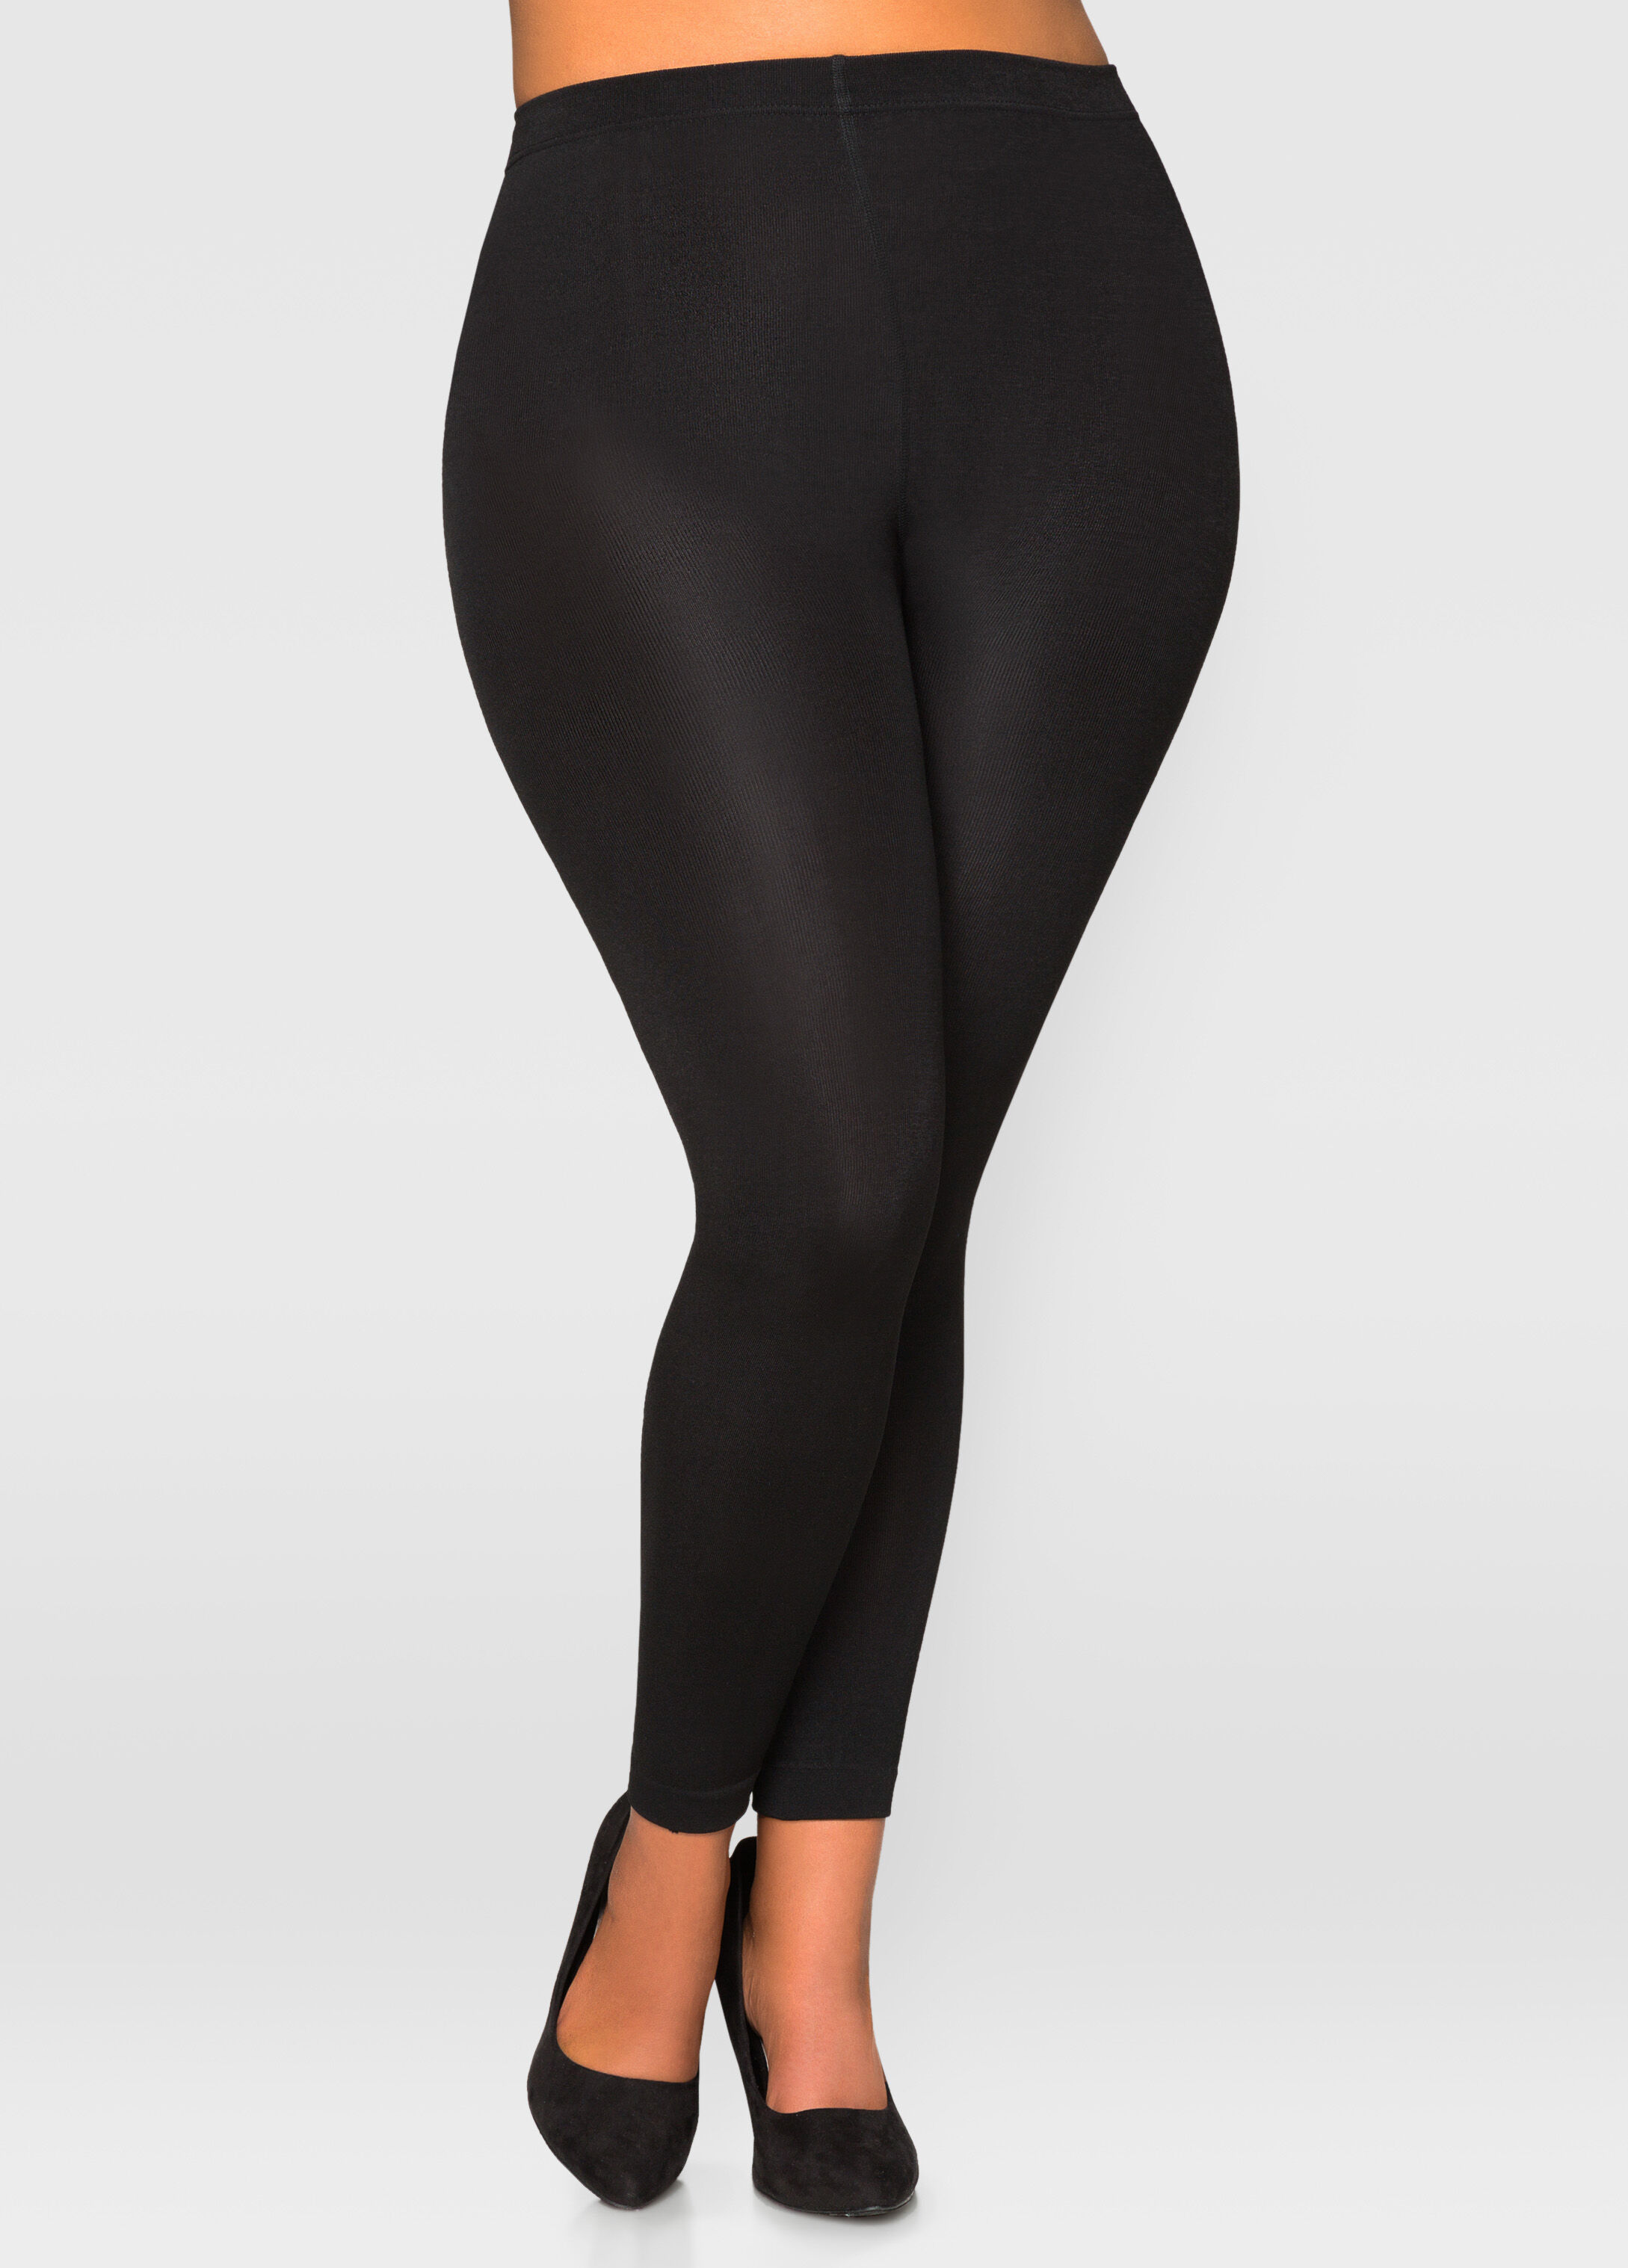 Footless Fleece Lined Tights-Plus Size Tights-Ashley Stewart